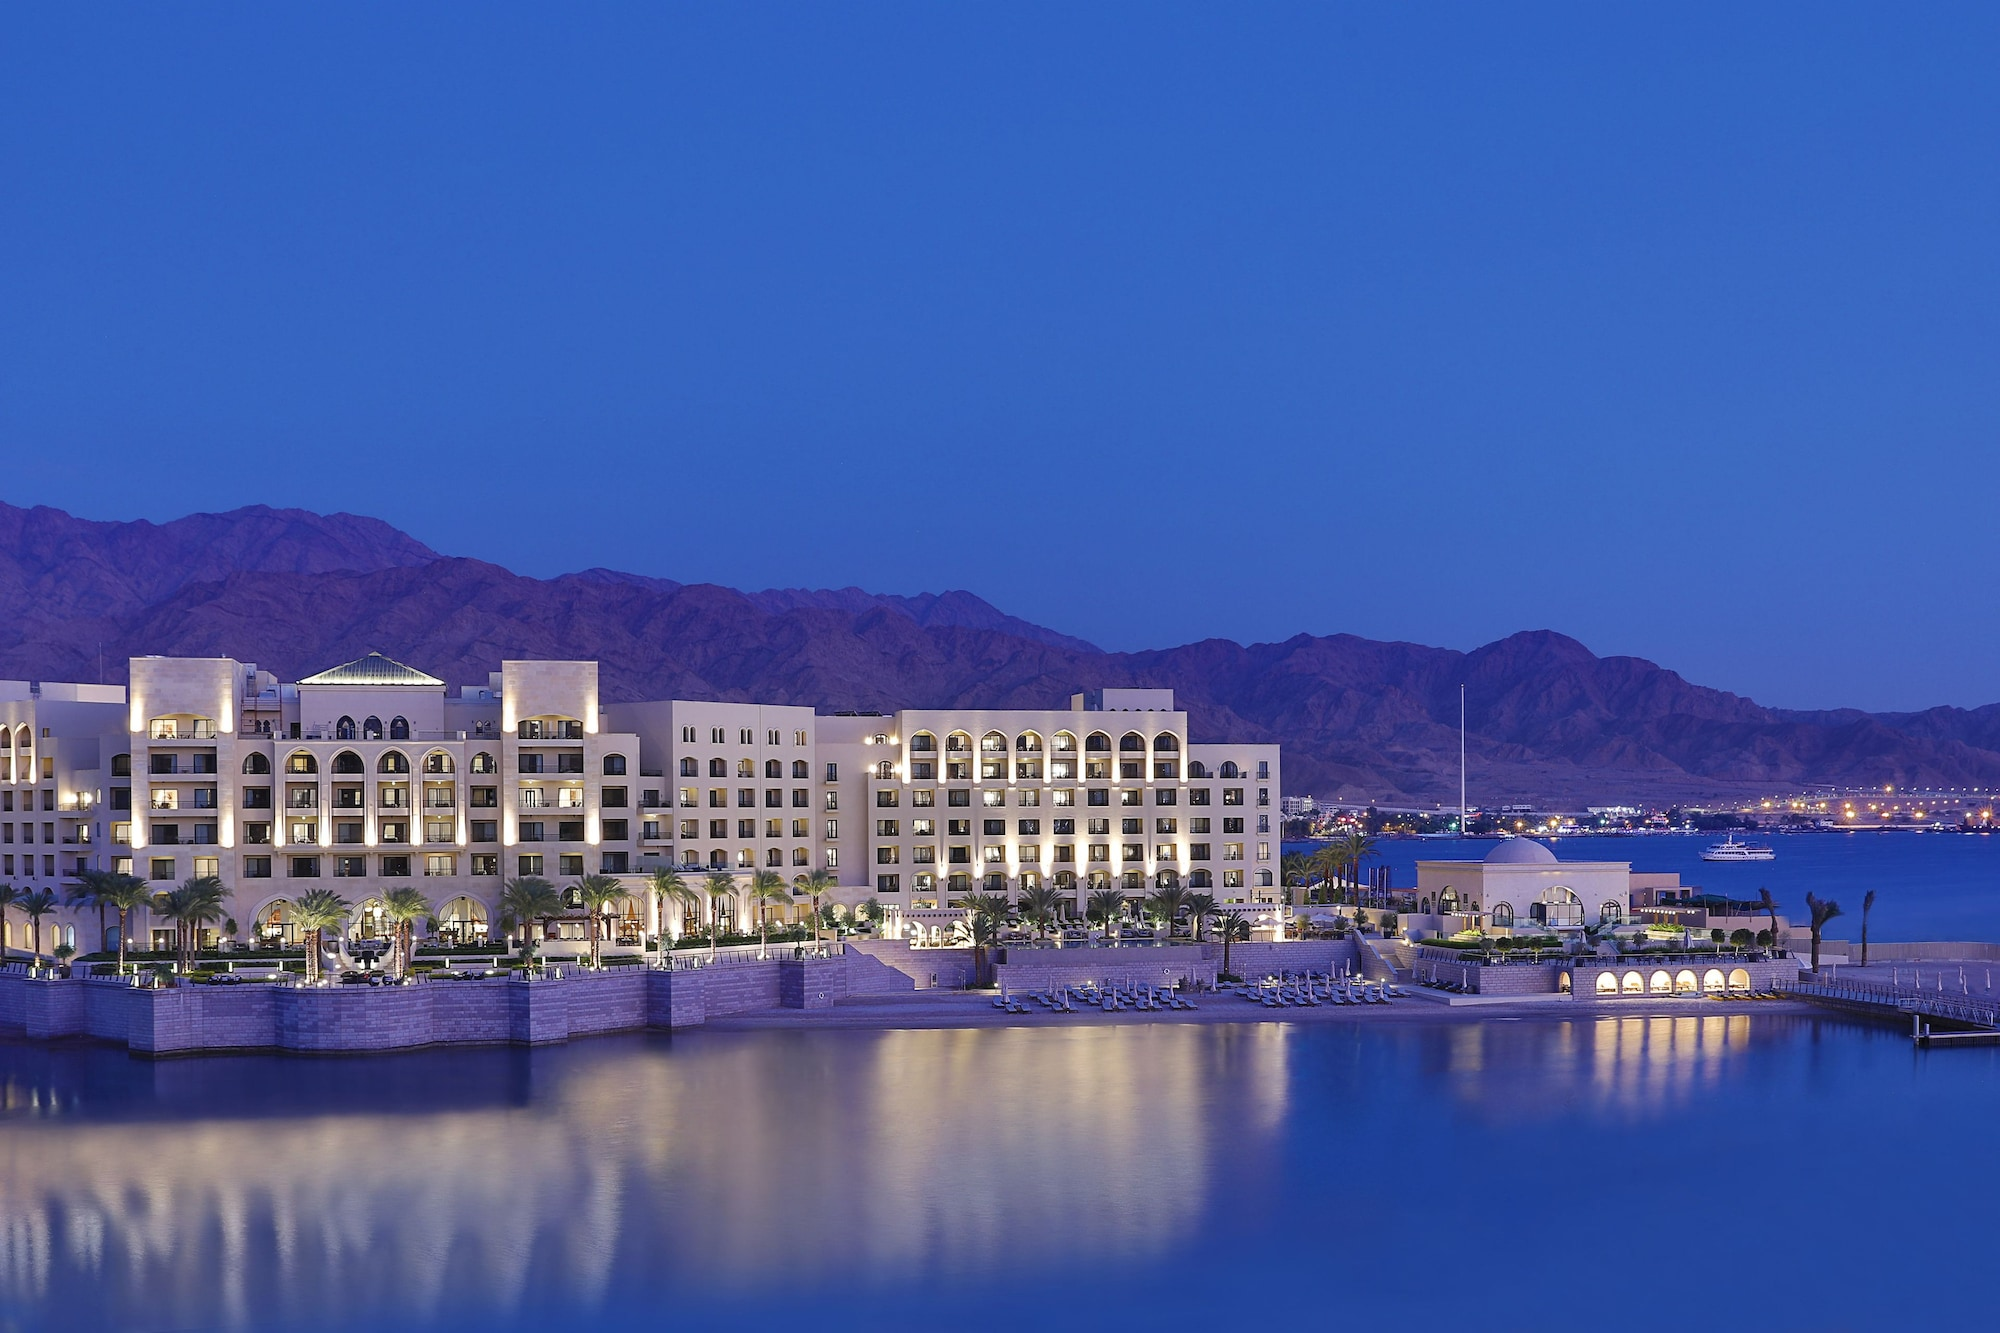 Al Manara, a Luxury Collection Hotel, Saraya Aqaba, Aqaba